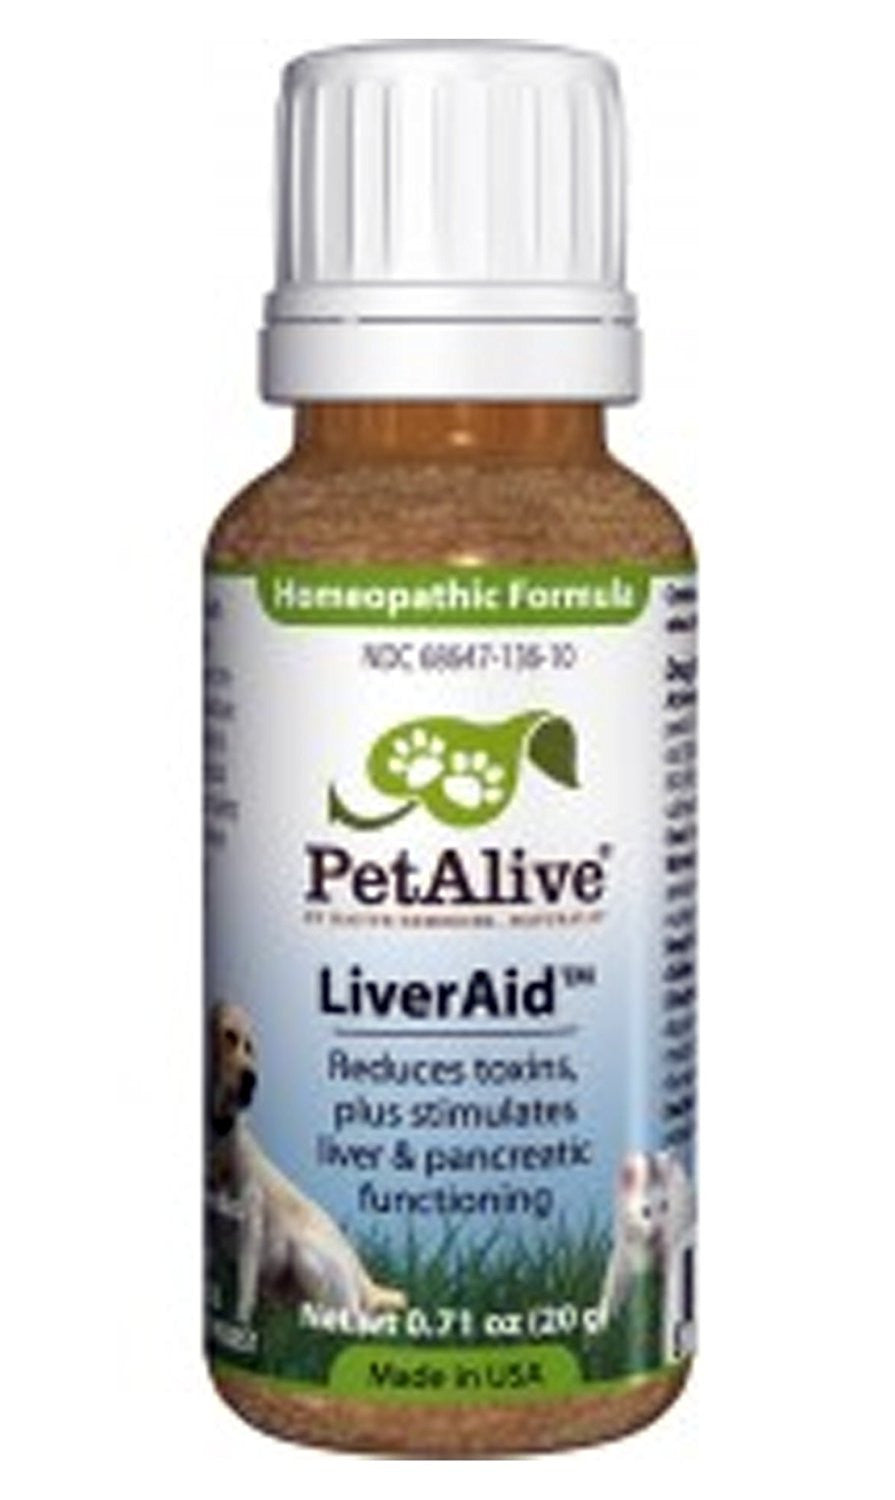 Natural LiverAid - Natural remedy supports liver, pancreas, and gallbladder health in pets